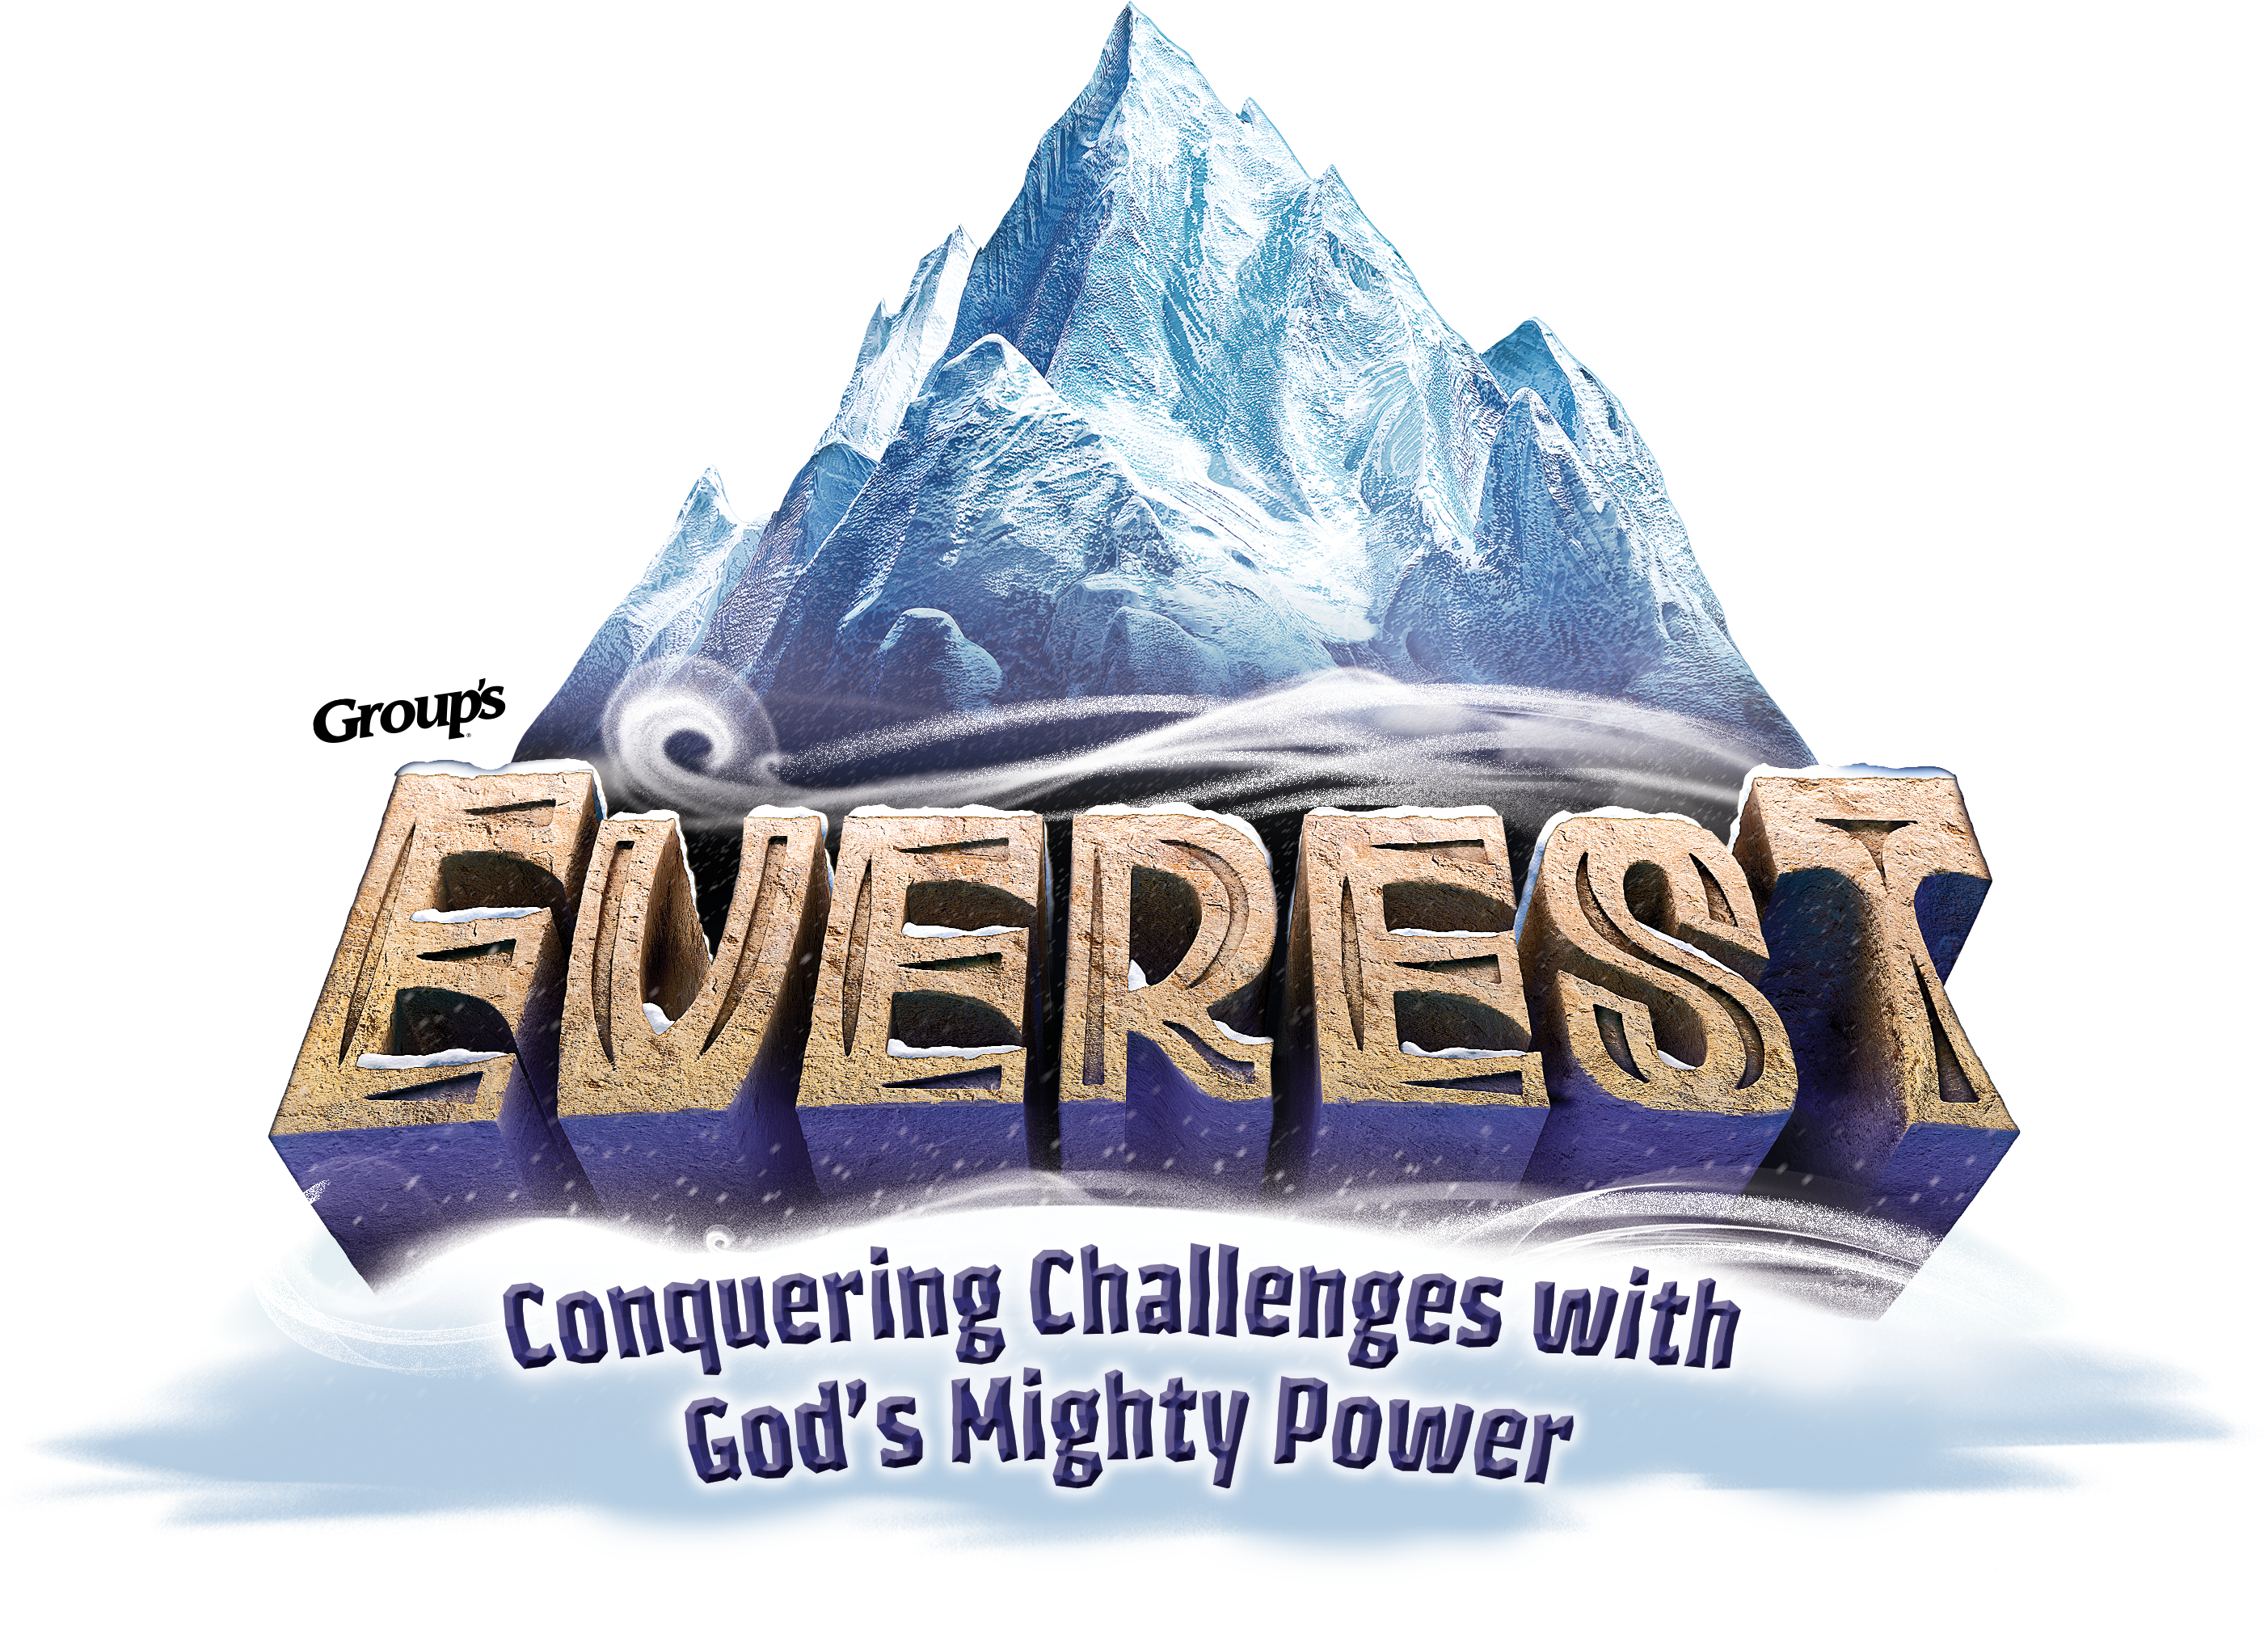 Free vacation bible school clipart png royalty free Everest Vbs PNG Transparent Everest Vbs.PNG Images. | PlusPNG png royalty free